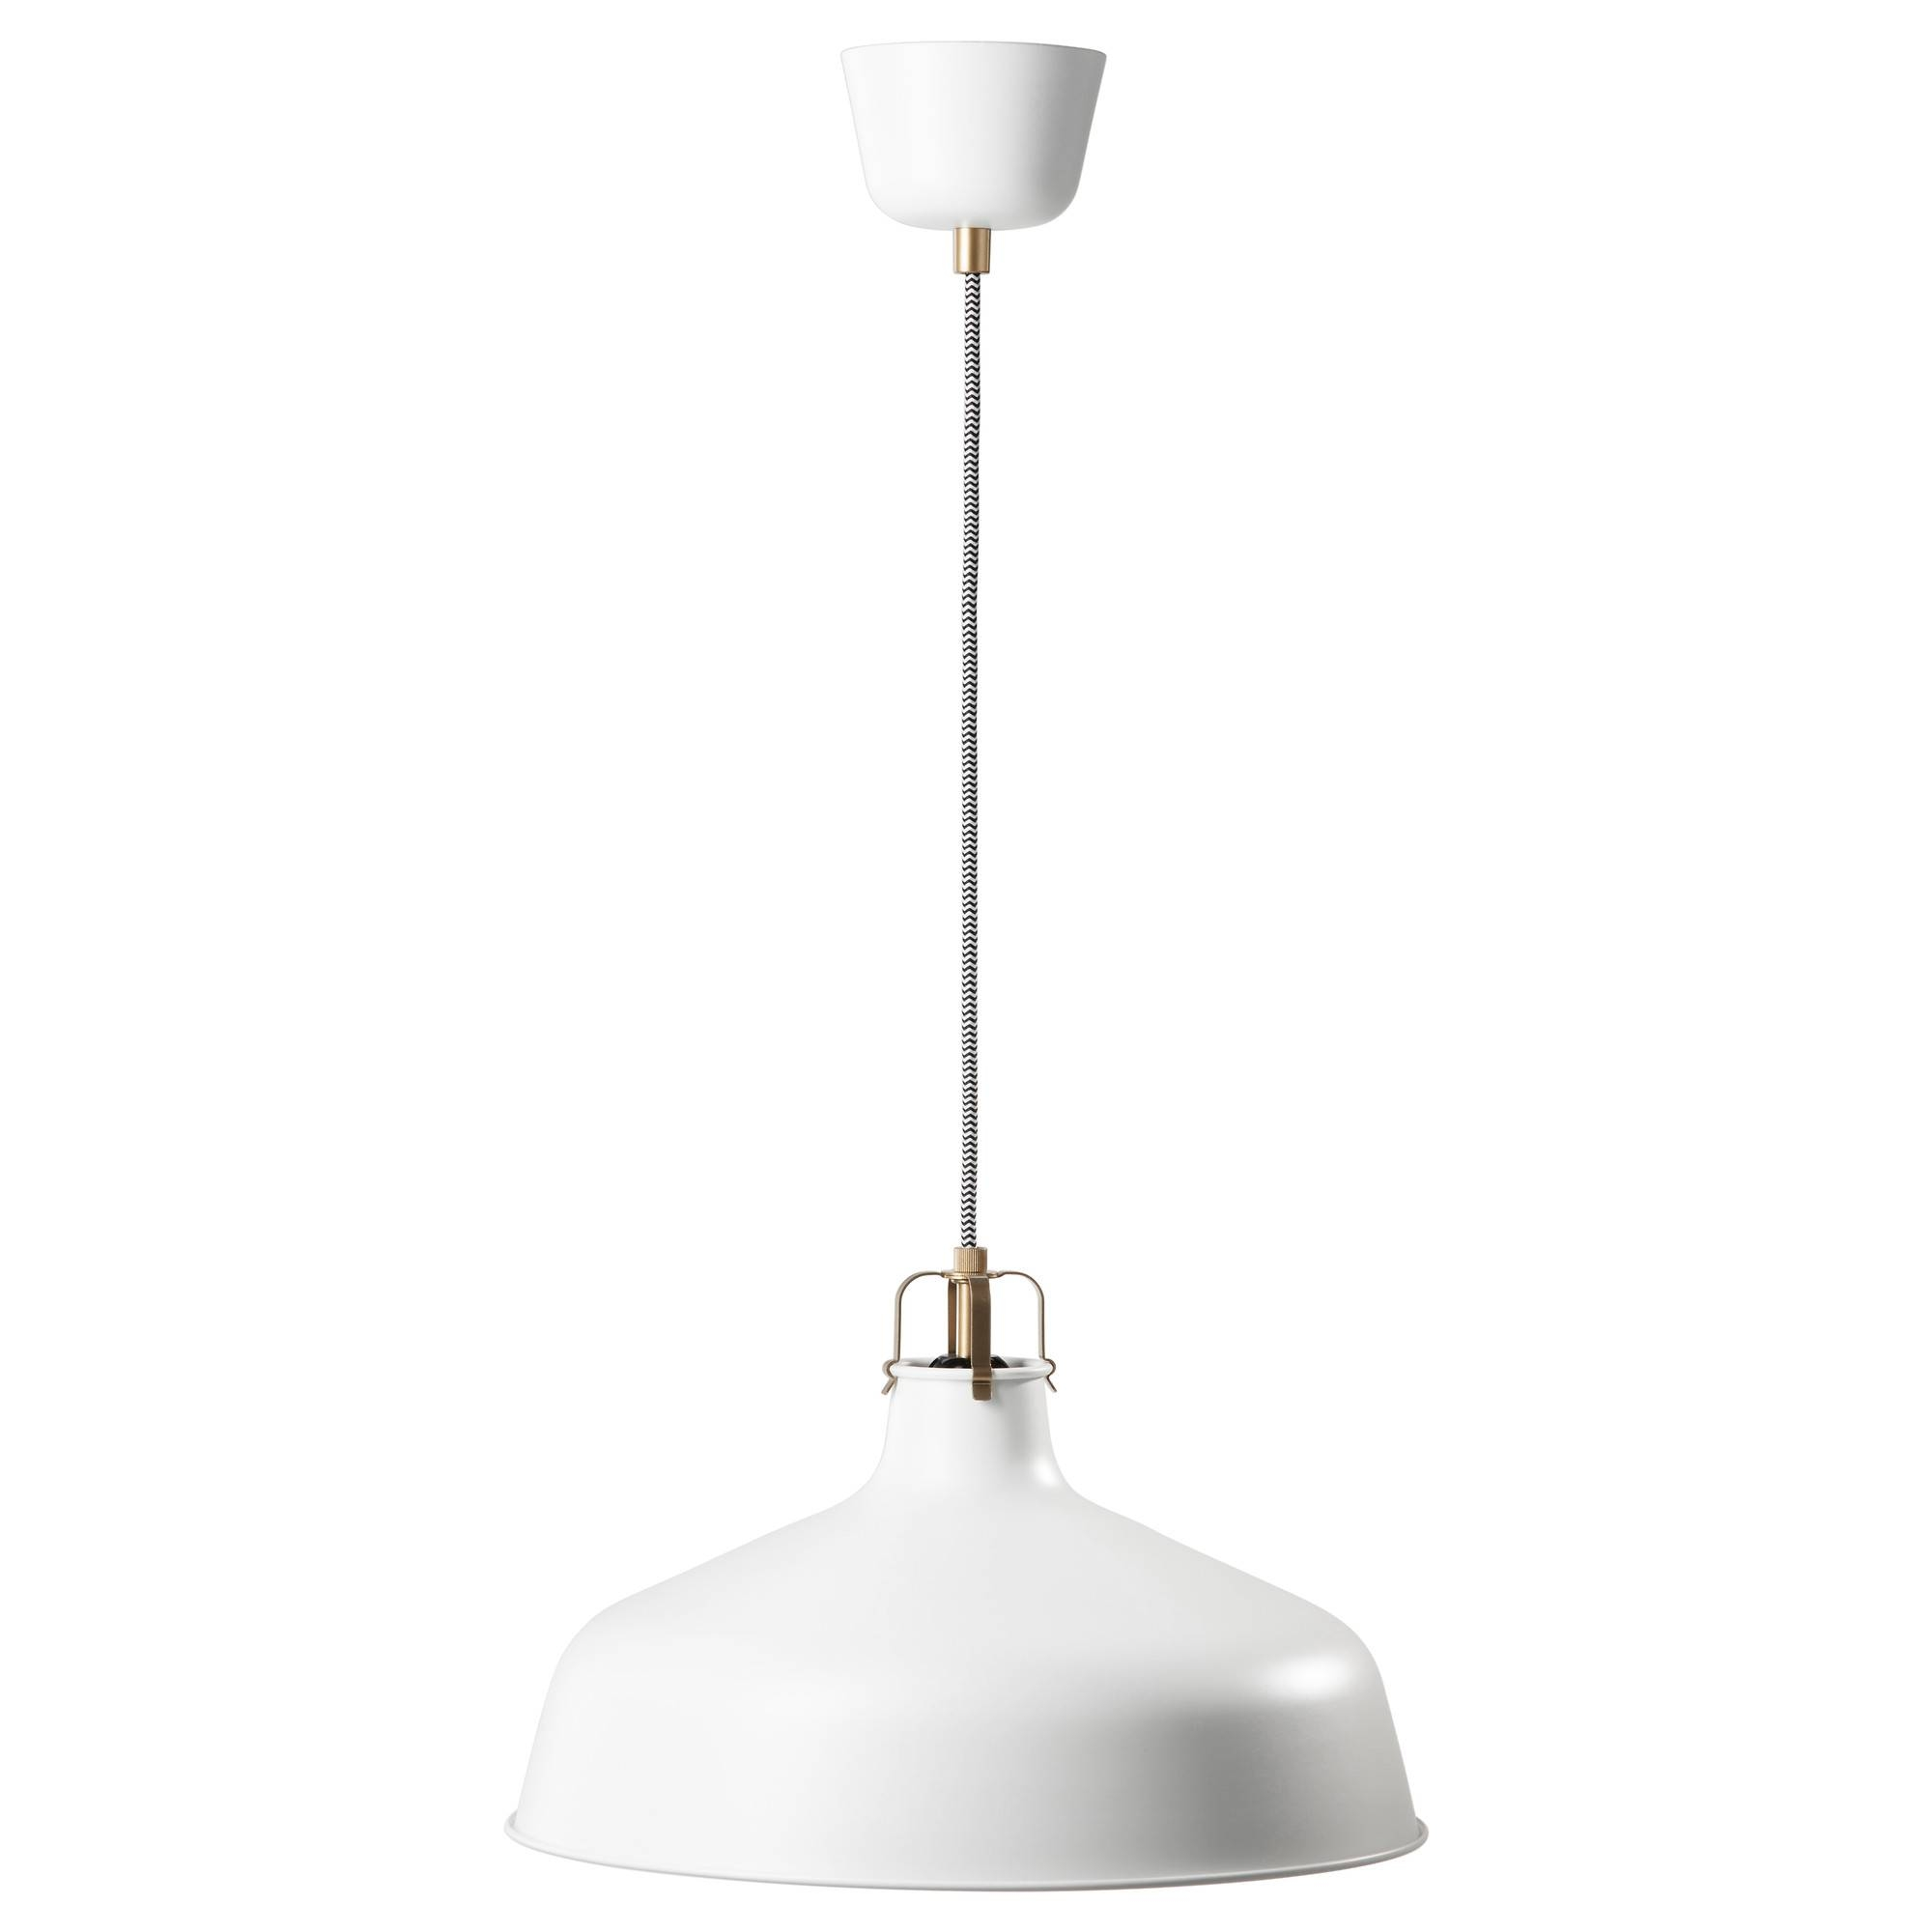 Ranarp Pendant Lamp - Off-White - Ikea inside Ikea Pendant Lights Fixtures (Image 15 of 15)